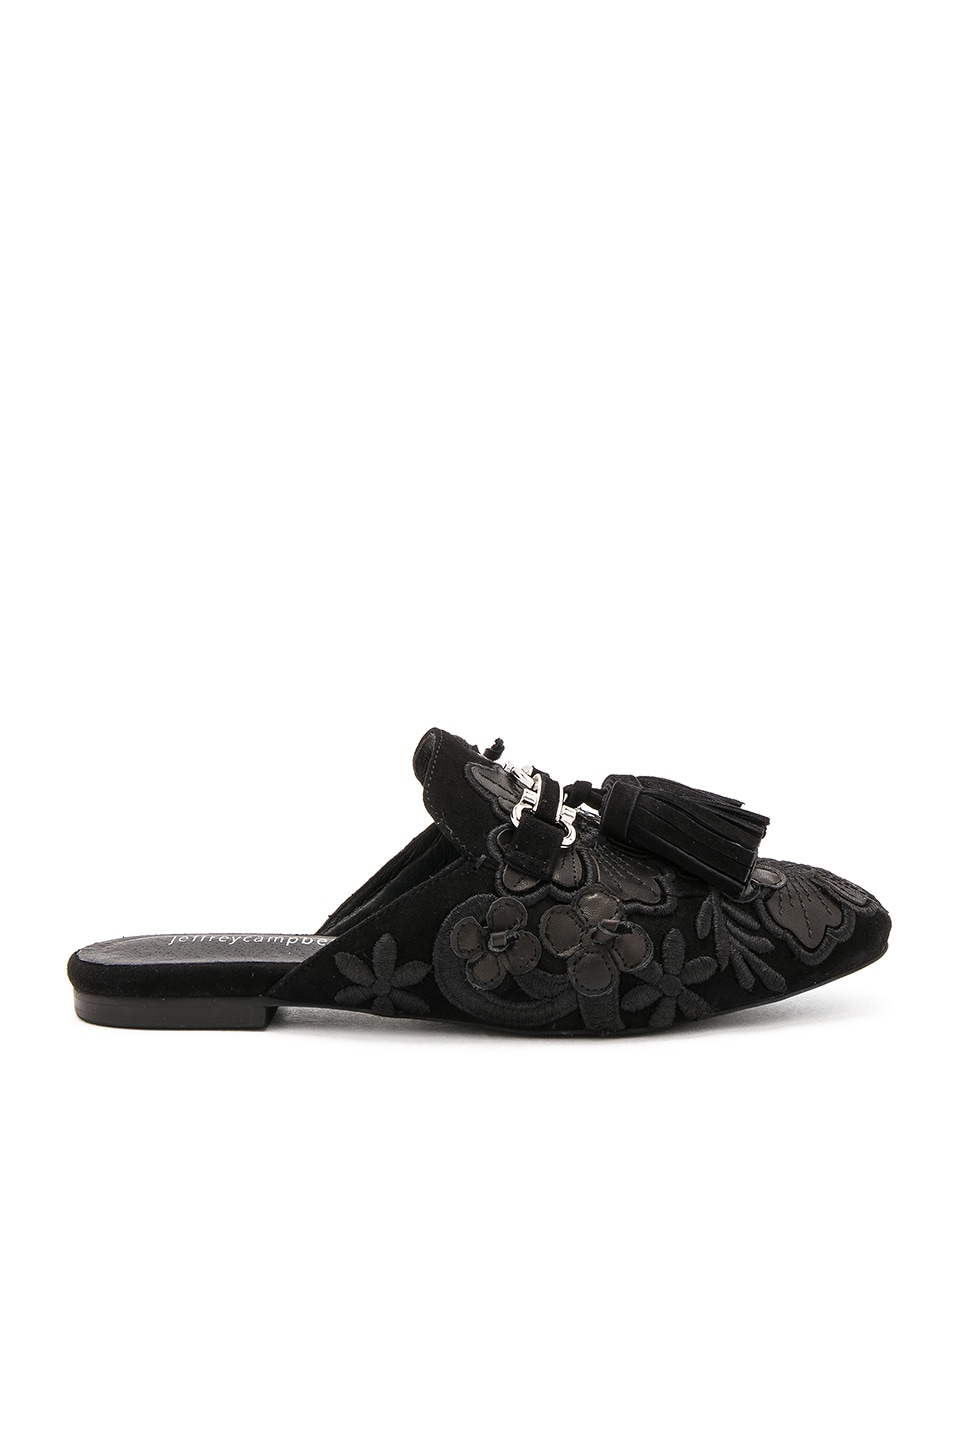 Jeffrey Campbell Ravis TSFL Slides in Black Suede Floral